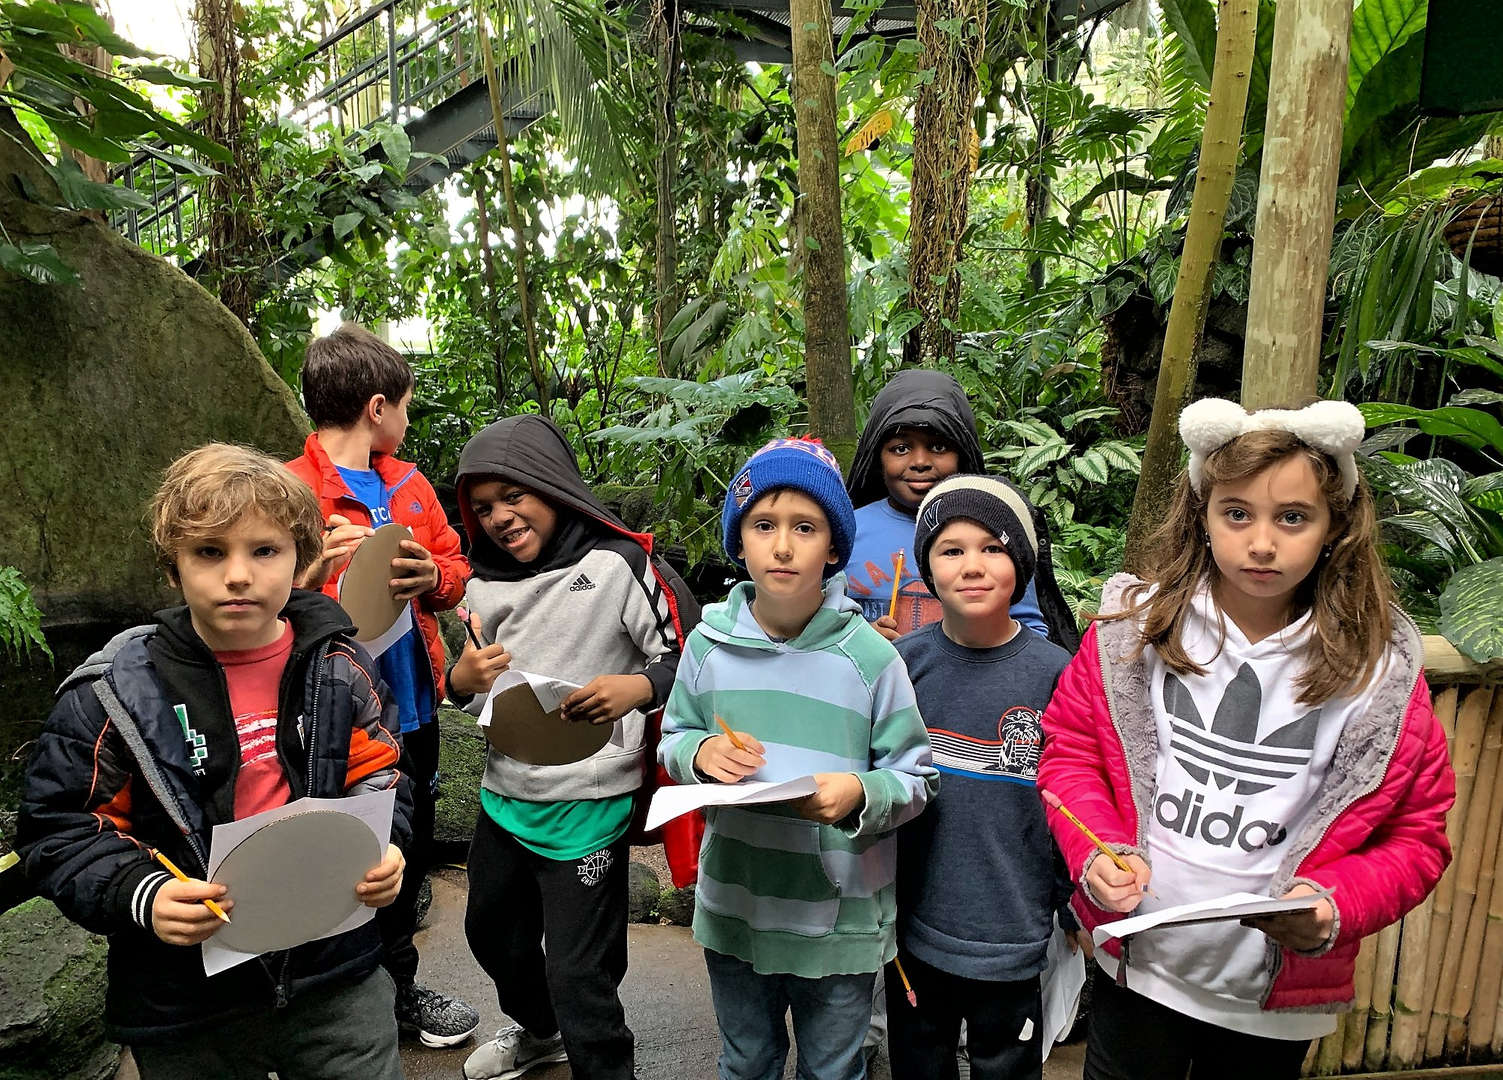 Students explored the garden's conservatory.